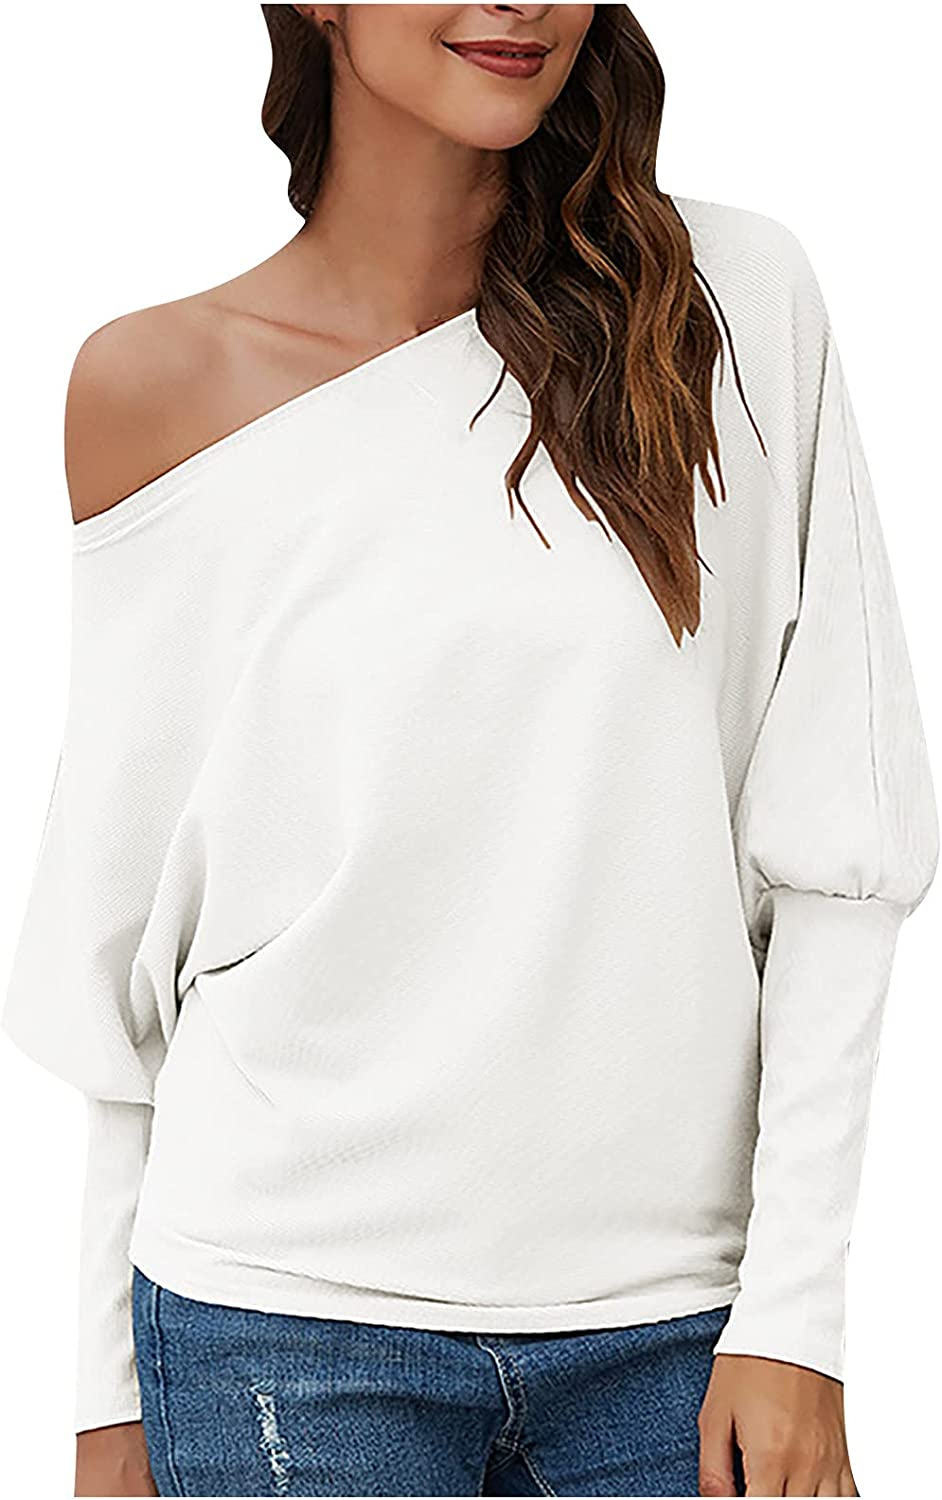 Vuijdayr Women's Sexy Sweater Off Shoulder Long Sleeve Solid Casual Comfortable Loose Sweater Pullover Knit Jumper